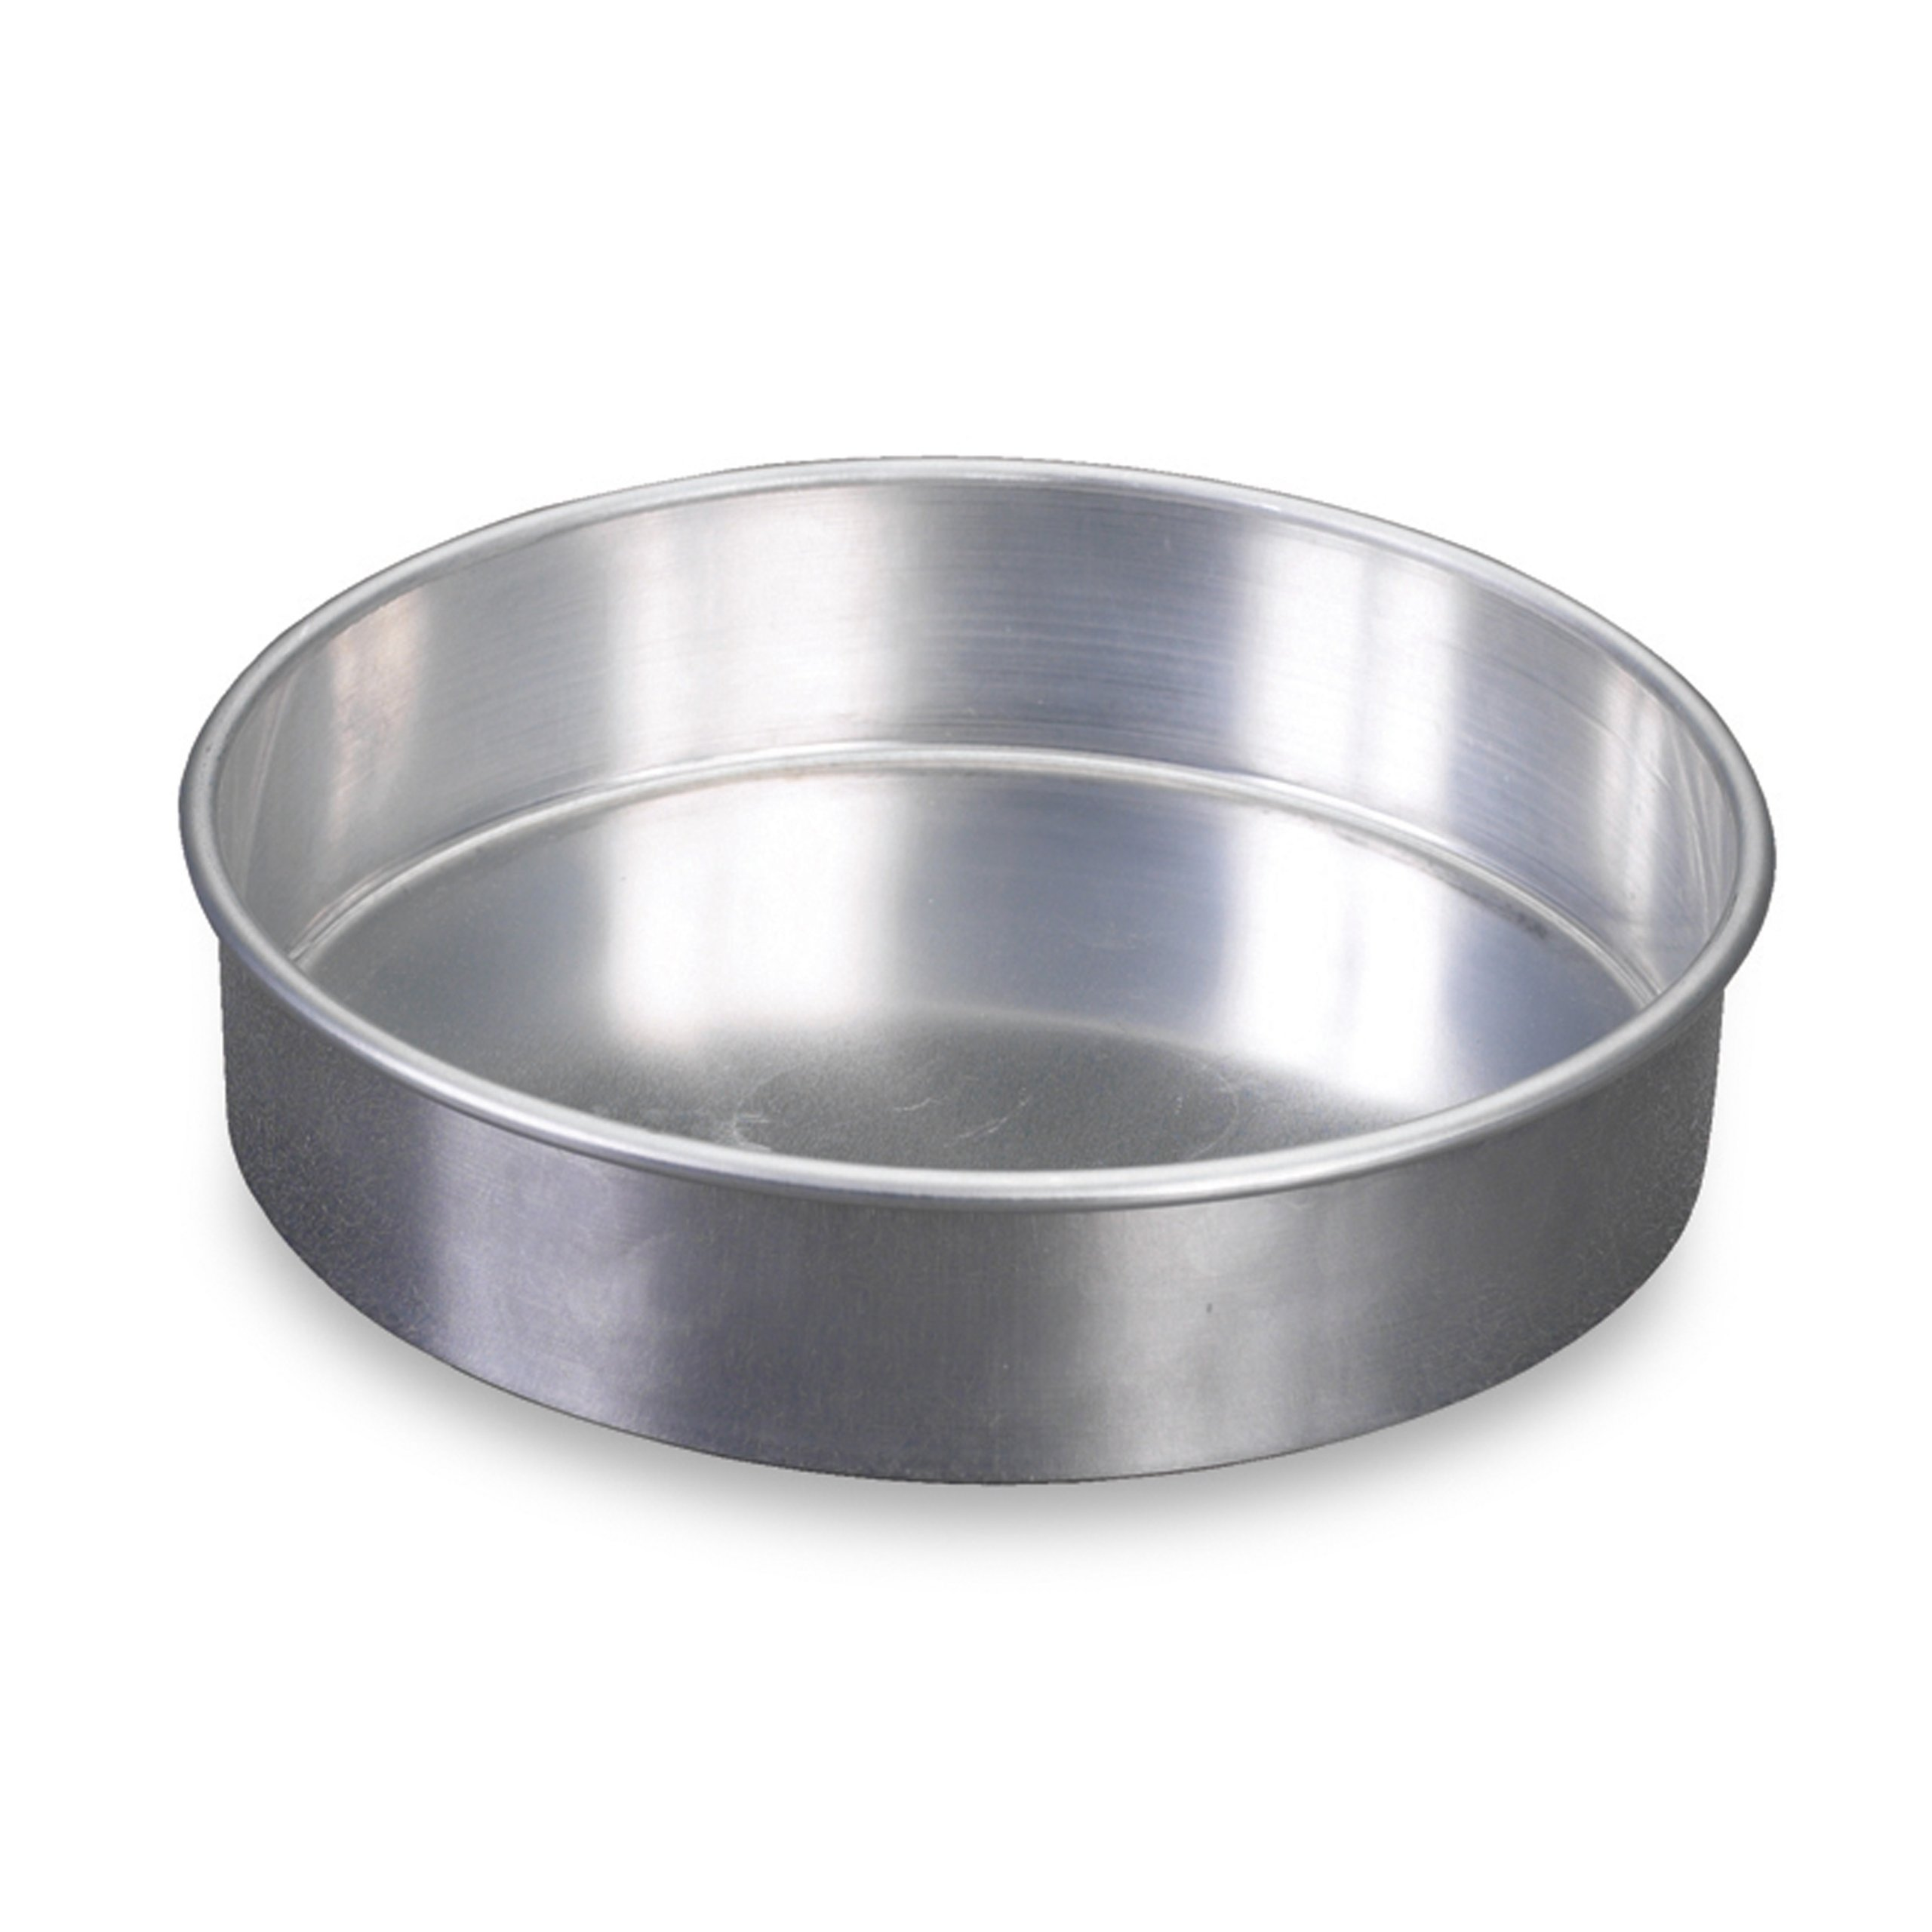 Nordic Ware 46900 Naturals Aluminum Round Layer Cake Pan, 9-Inch by Nordic Ware